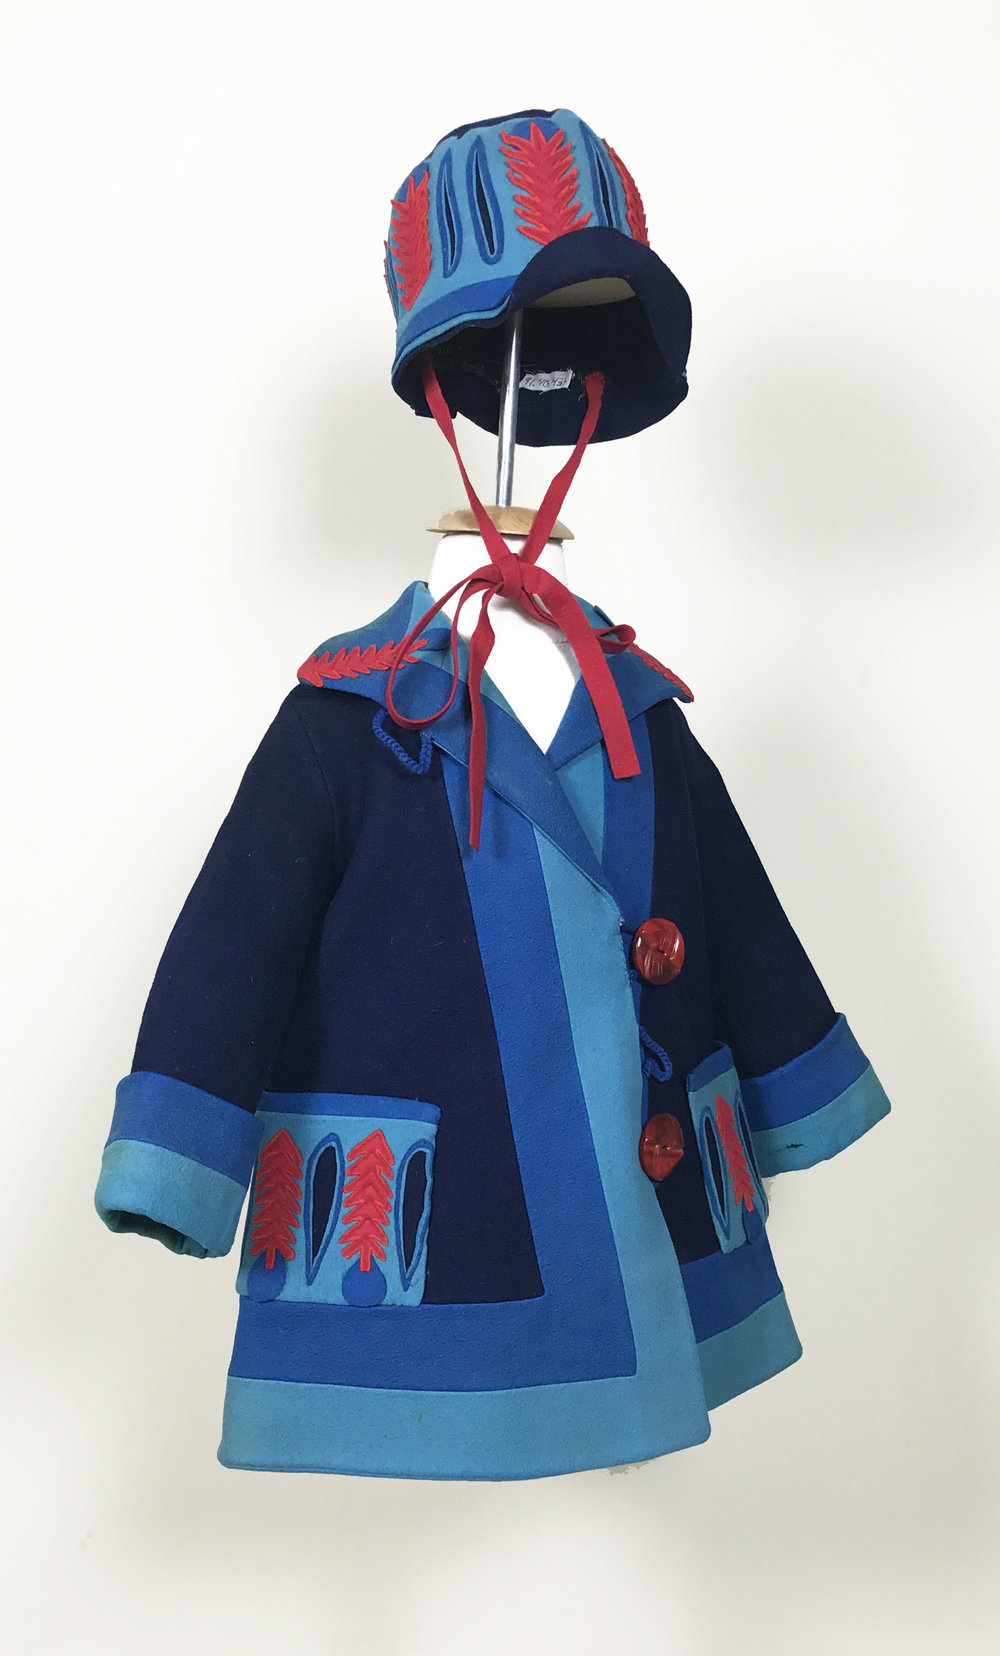 Girl's Jacket and Hat Ensemble, c. 1920s, Ars Lenci, Made in Italy, Torino, New-York, Paris, London, Manchester, wool and cotton, Collection of The Grace Museum, Gift of Ms. Martha Pender.